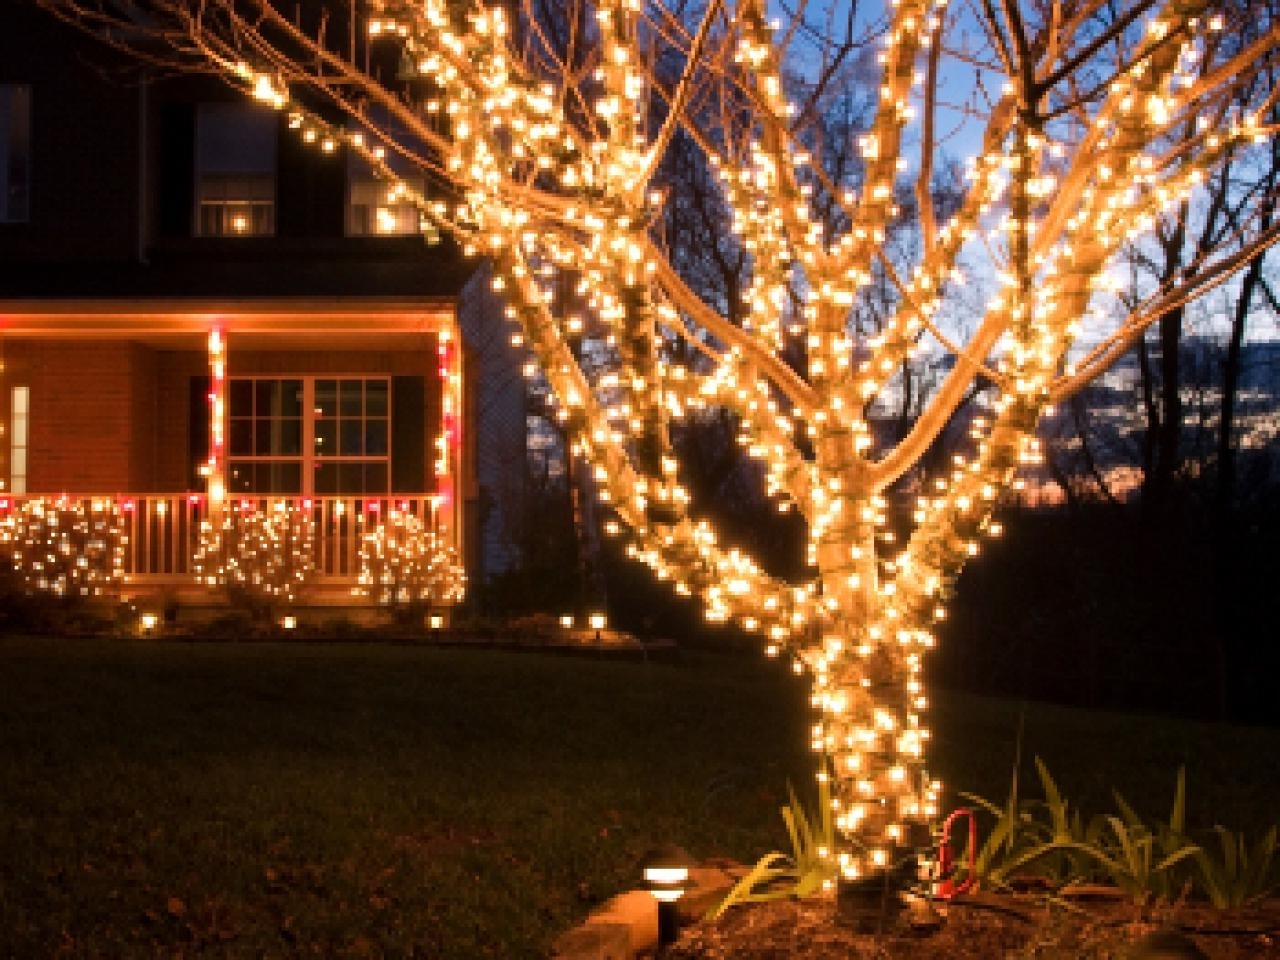 Diy For Hanging Lights On An Outdoor Tree (View 6 of 20)